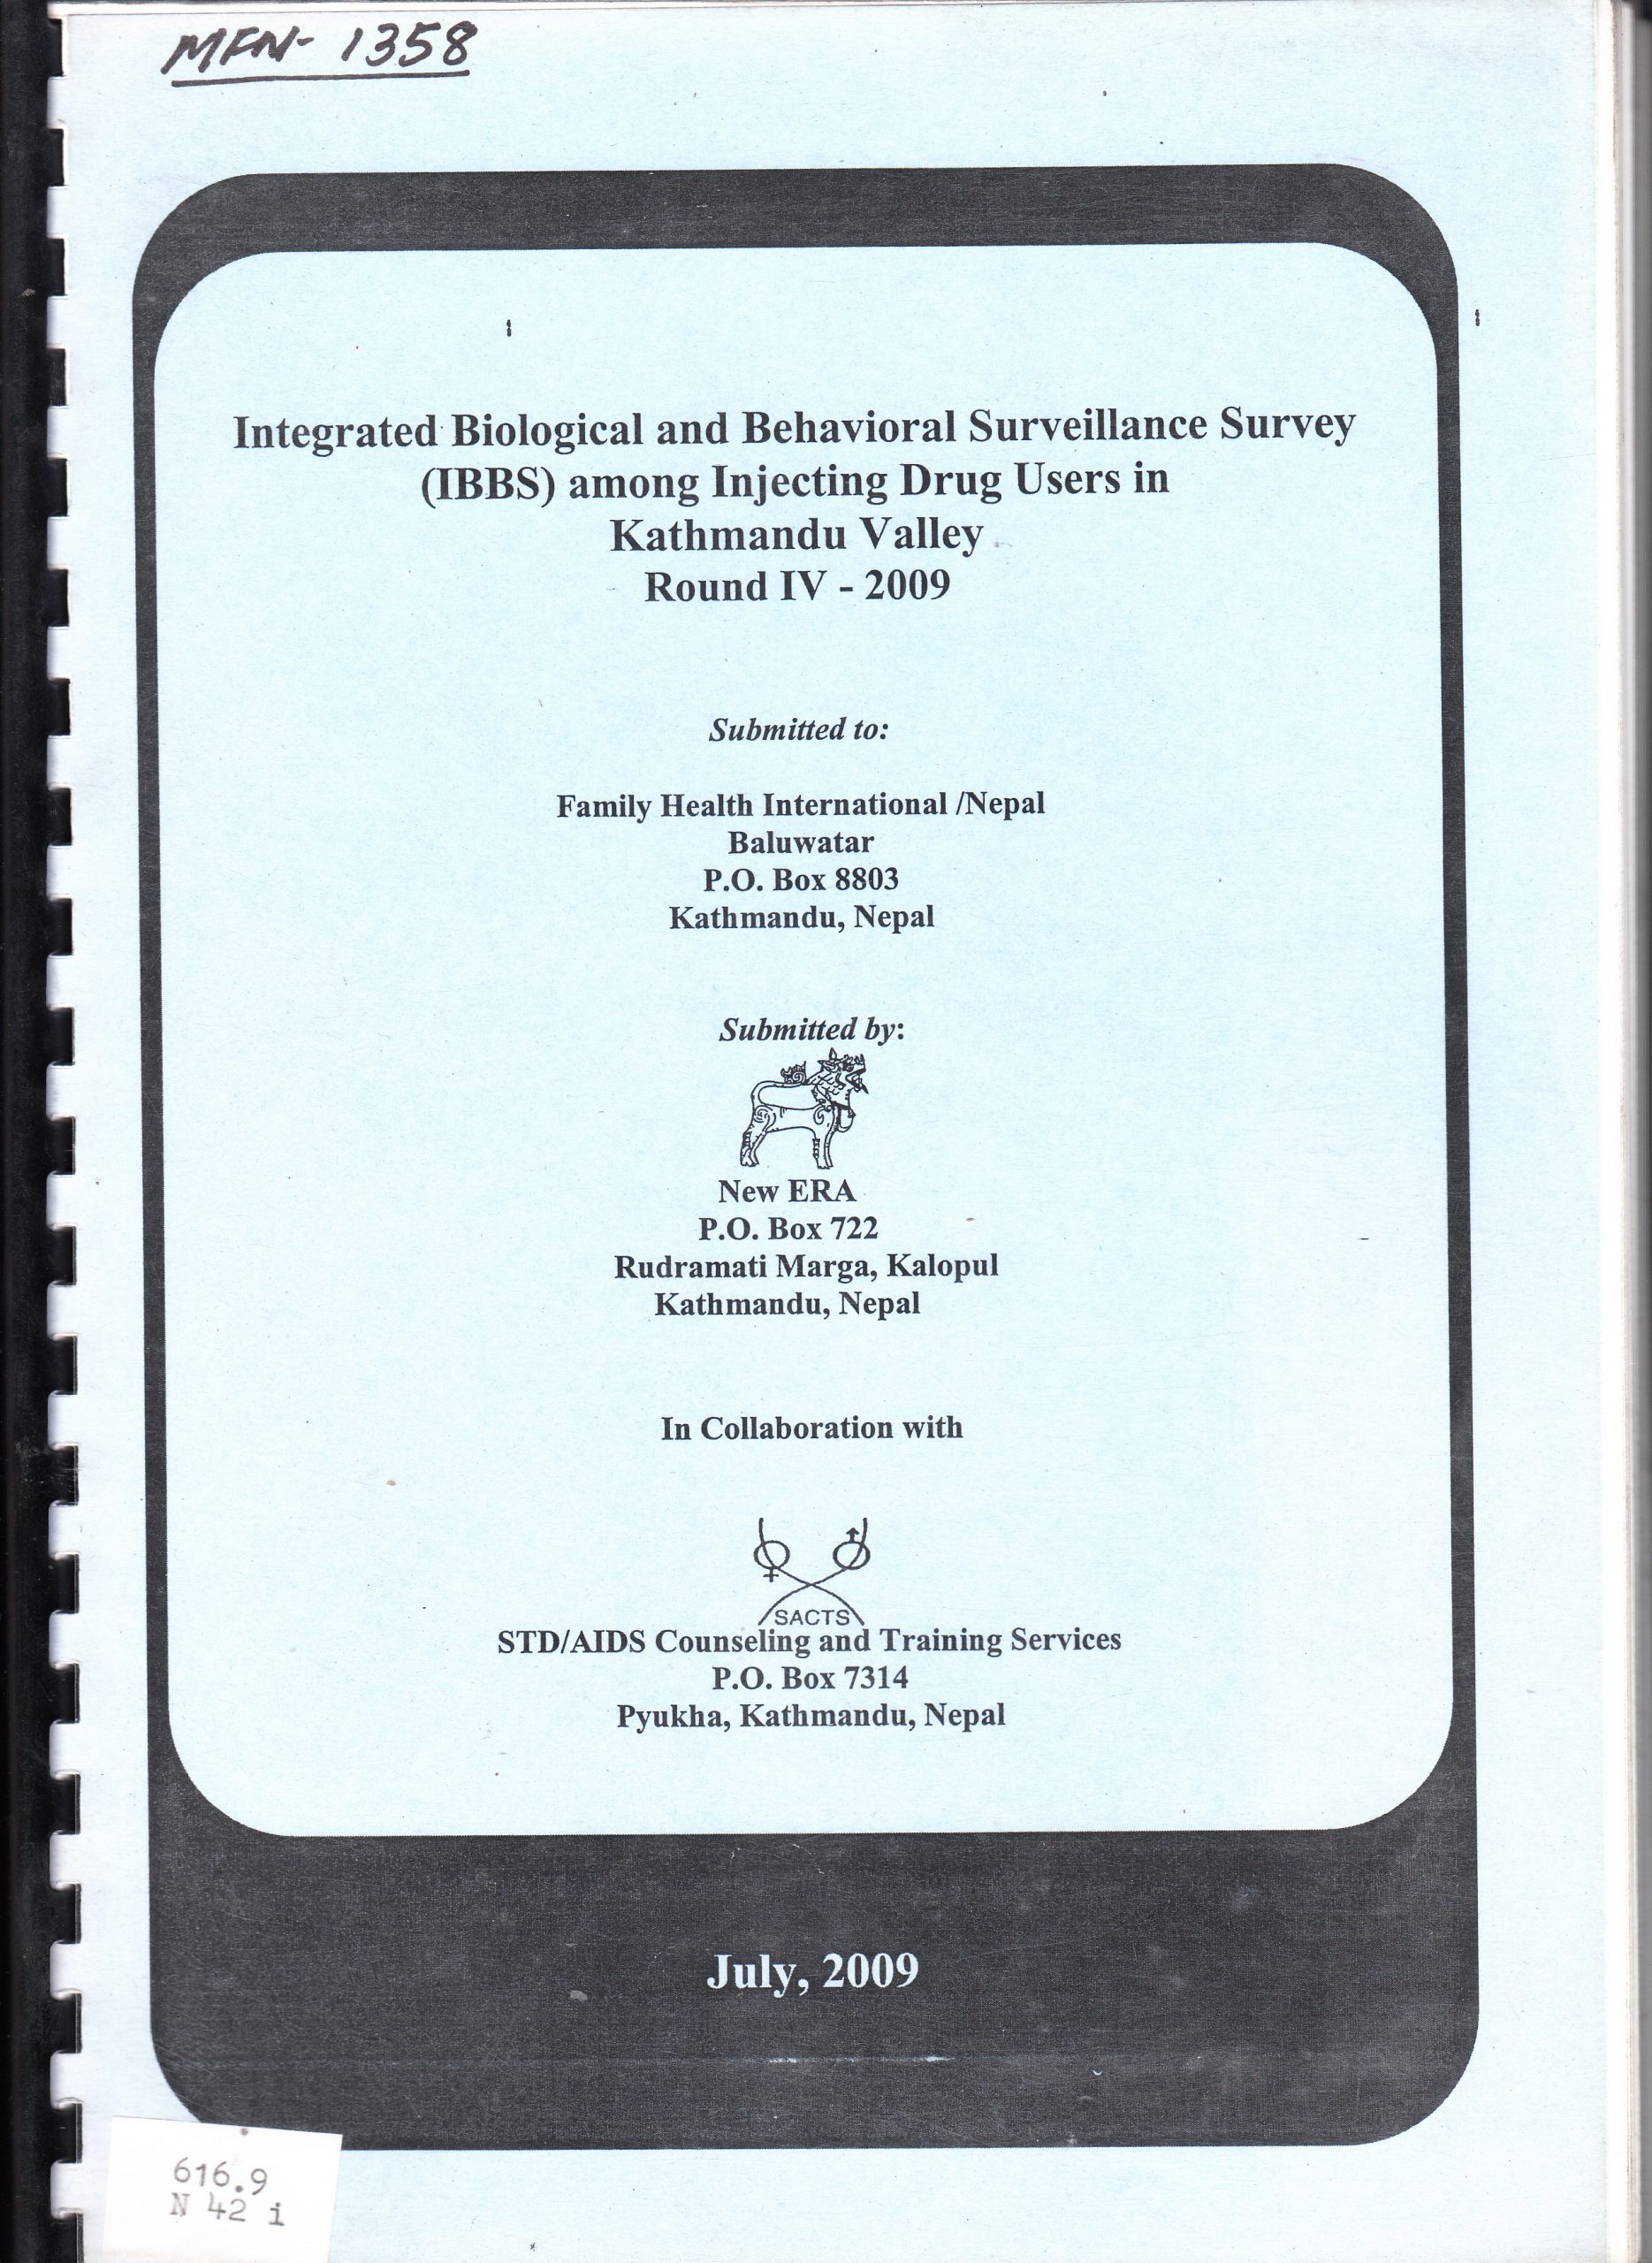 Integrated Biological and Behavioral Surveillance Survey (IBBS) among Male Injecting Drug Users (IDUs) in Kathmandu Valley, Round IV – 2009